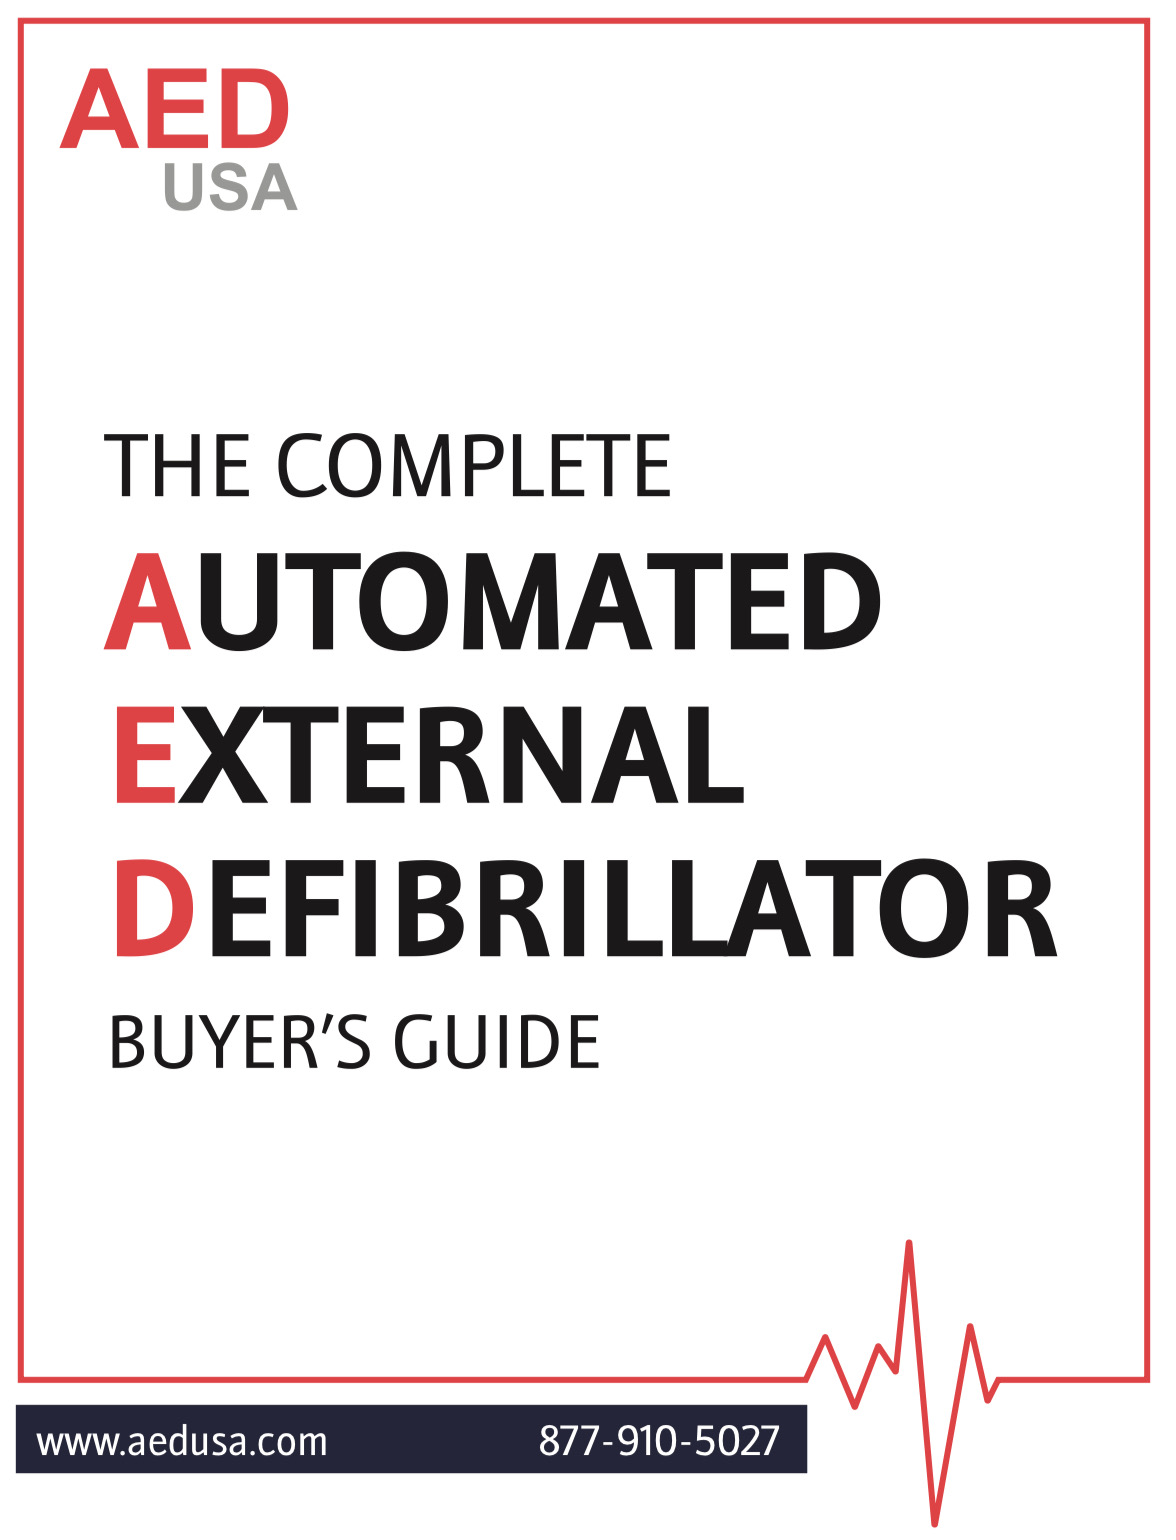 aed buyer's guide